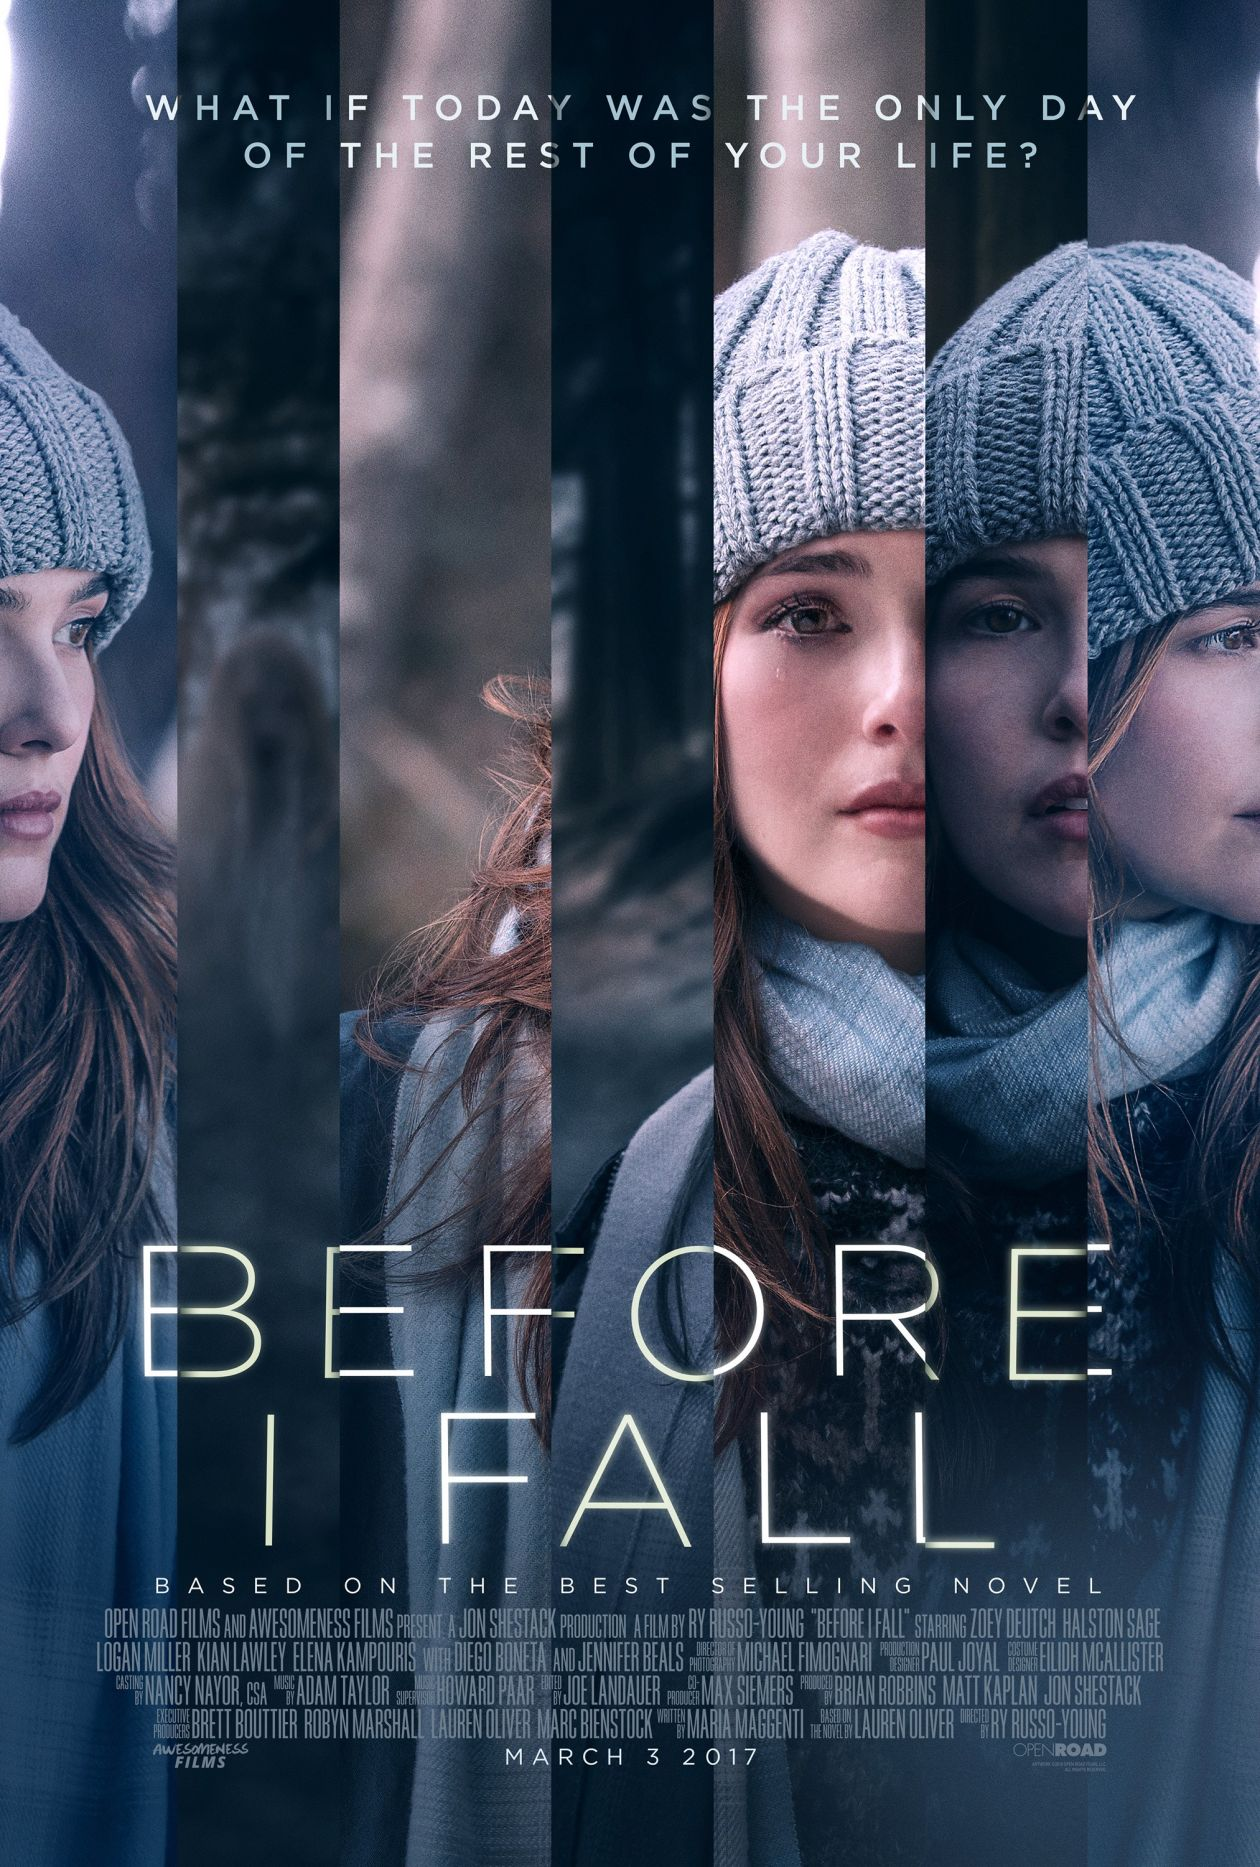 Zoey Deutch actress | Before I Fall / Le dernier jour de ma vie / Samantha Kingston | Ry Russo-Young 2017 Movie Poster Affiche film